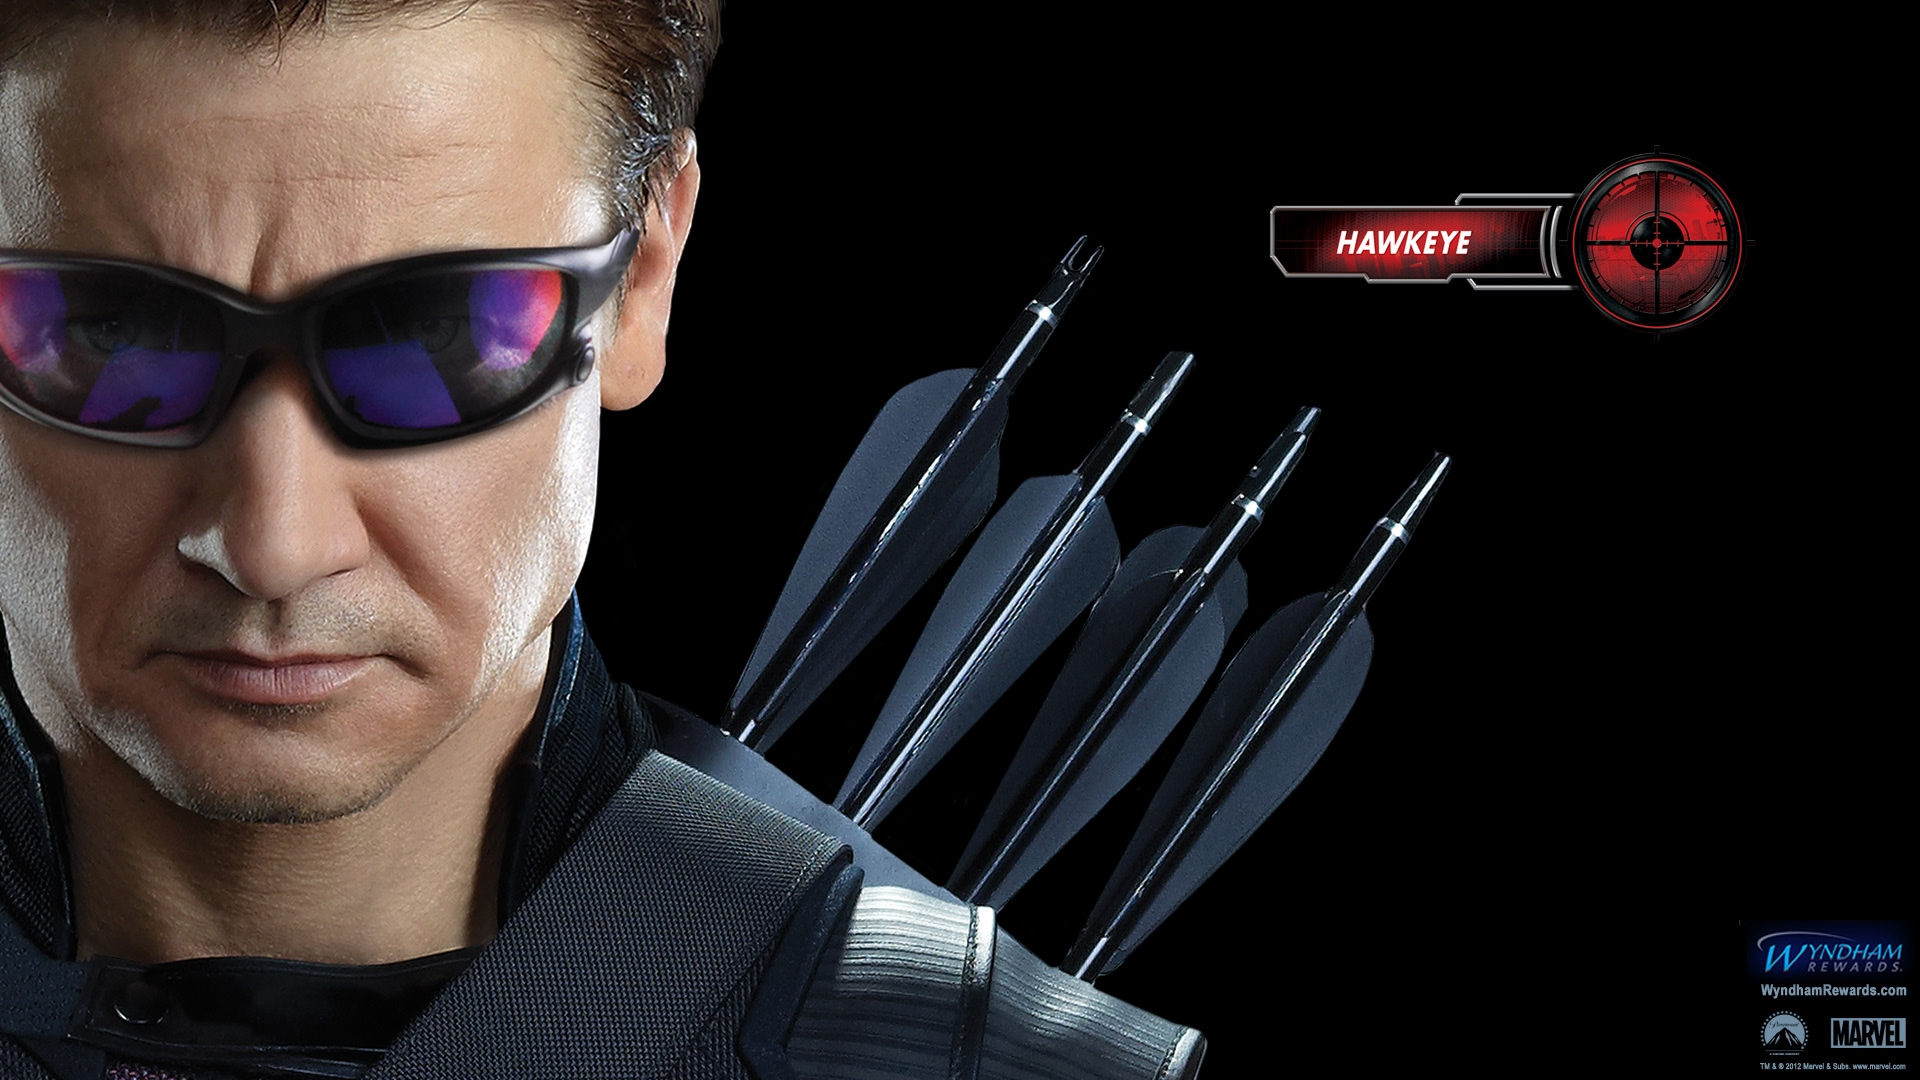 hawkeye wallpapers page - photo #13